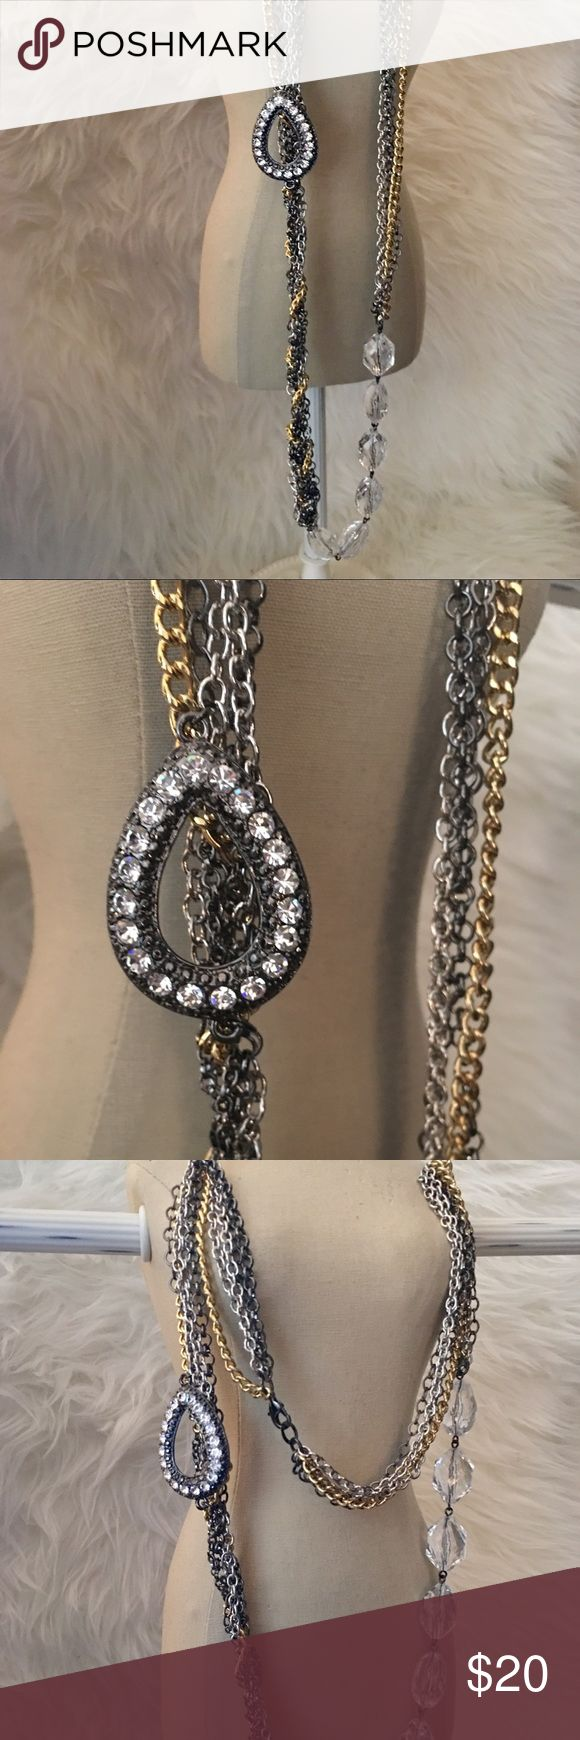 Gold/Silver/Gunmetal/Rhnstns Long Necklace *N/WOT* Gold/Silver/Gunmetal/Rhinestone Long Necklace *N/WOT* Beautiful necklace! No signs of wear, in great condition. Please see photos. Nordstrom Jewelry Necklaces